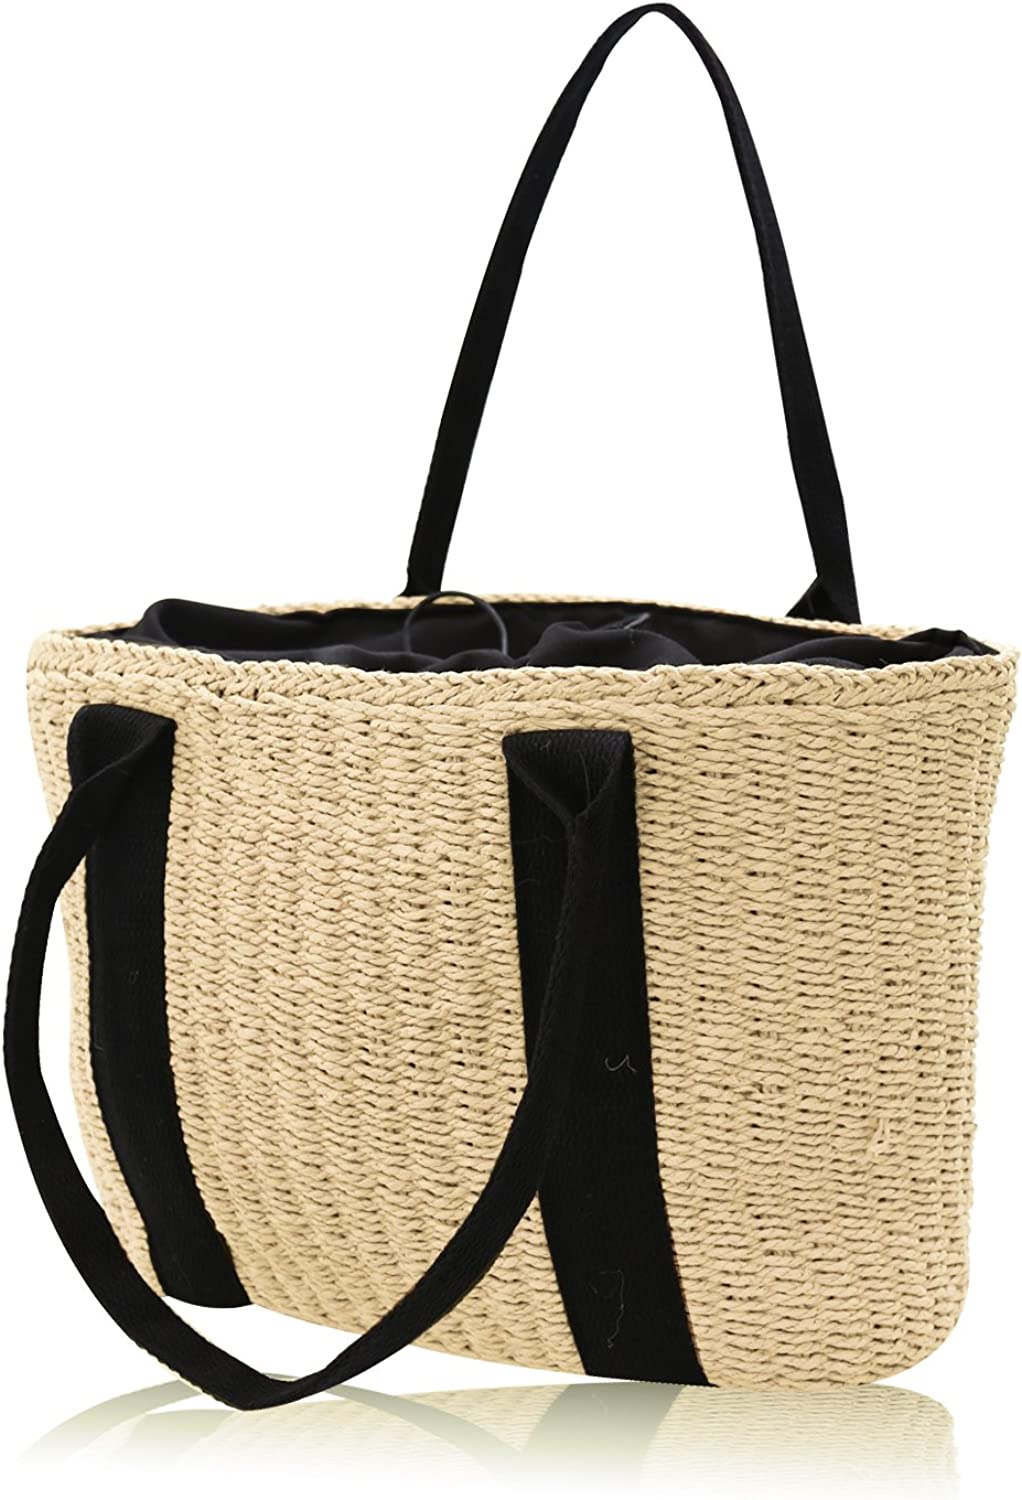 HJR 2018 Women Handwoven handbag made of Natural straw For Holiday, Beach, Leisure Highcapacity Tote Bag color Beige